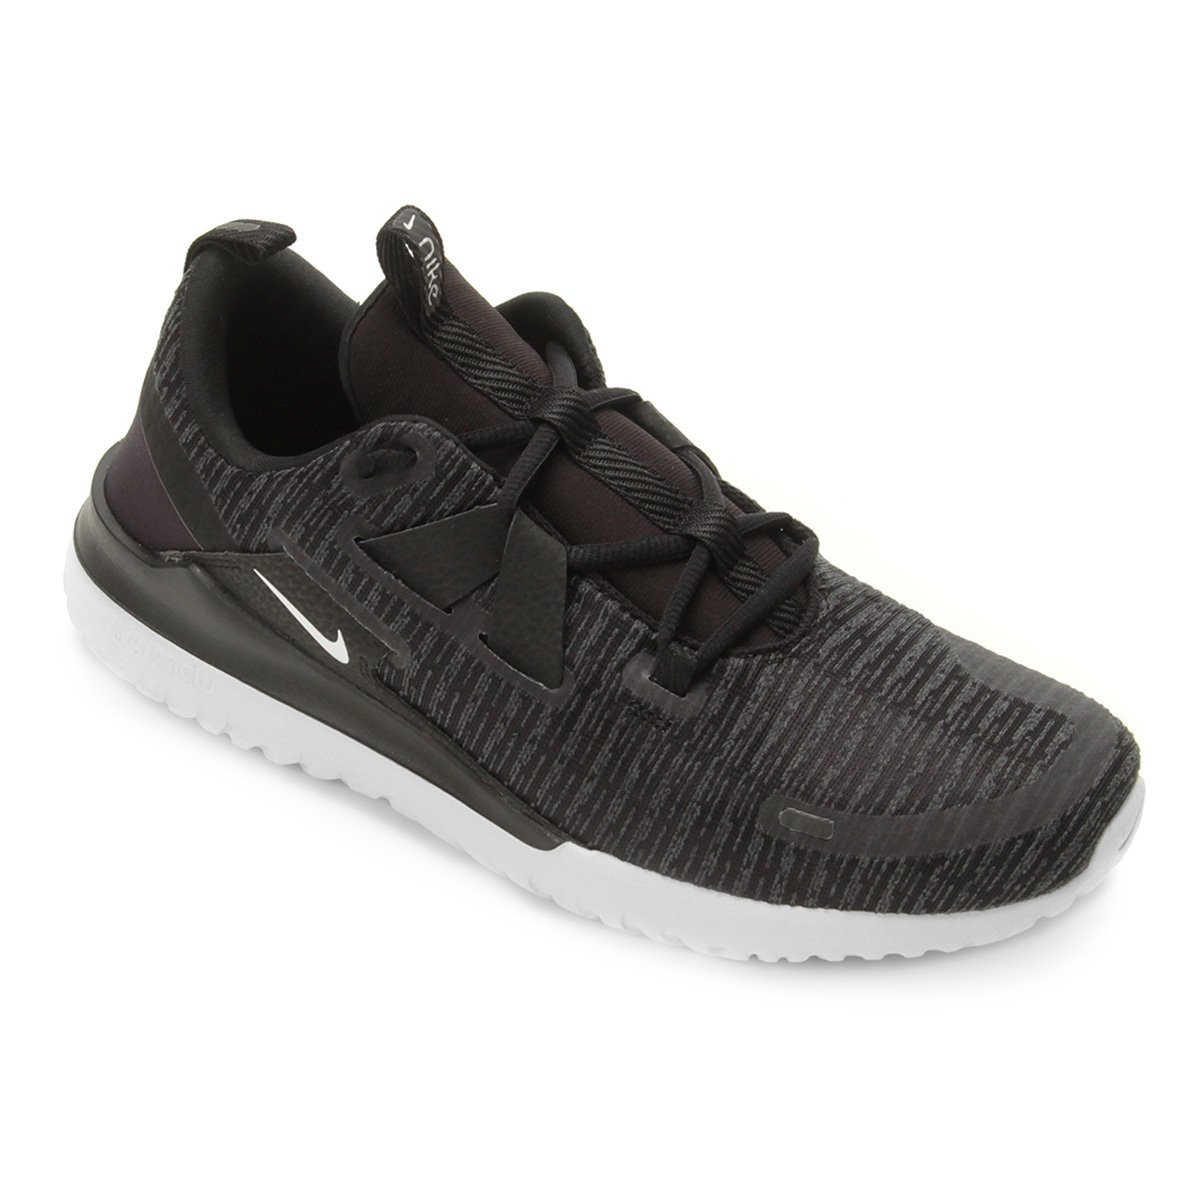 6a91af5371a FornecedorNetshoes. Tênis Nike Renew Arena Masculino